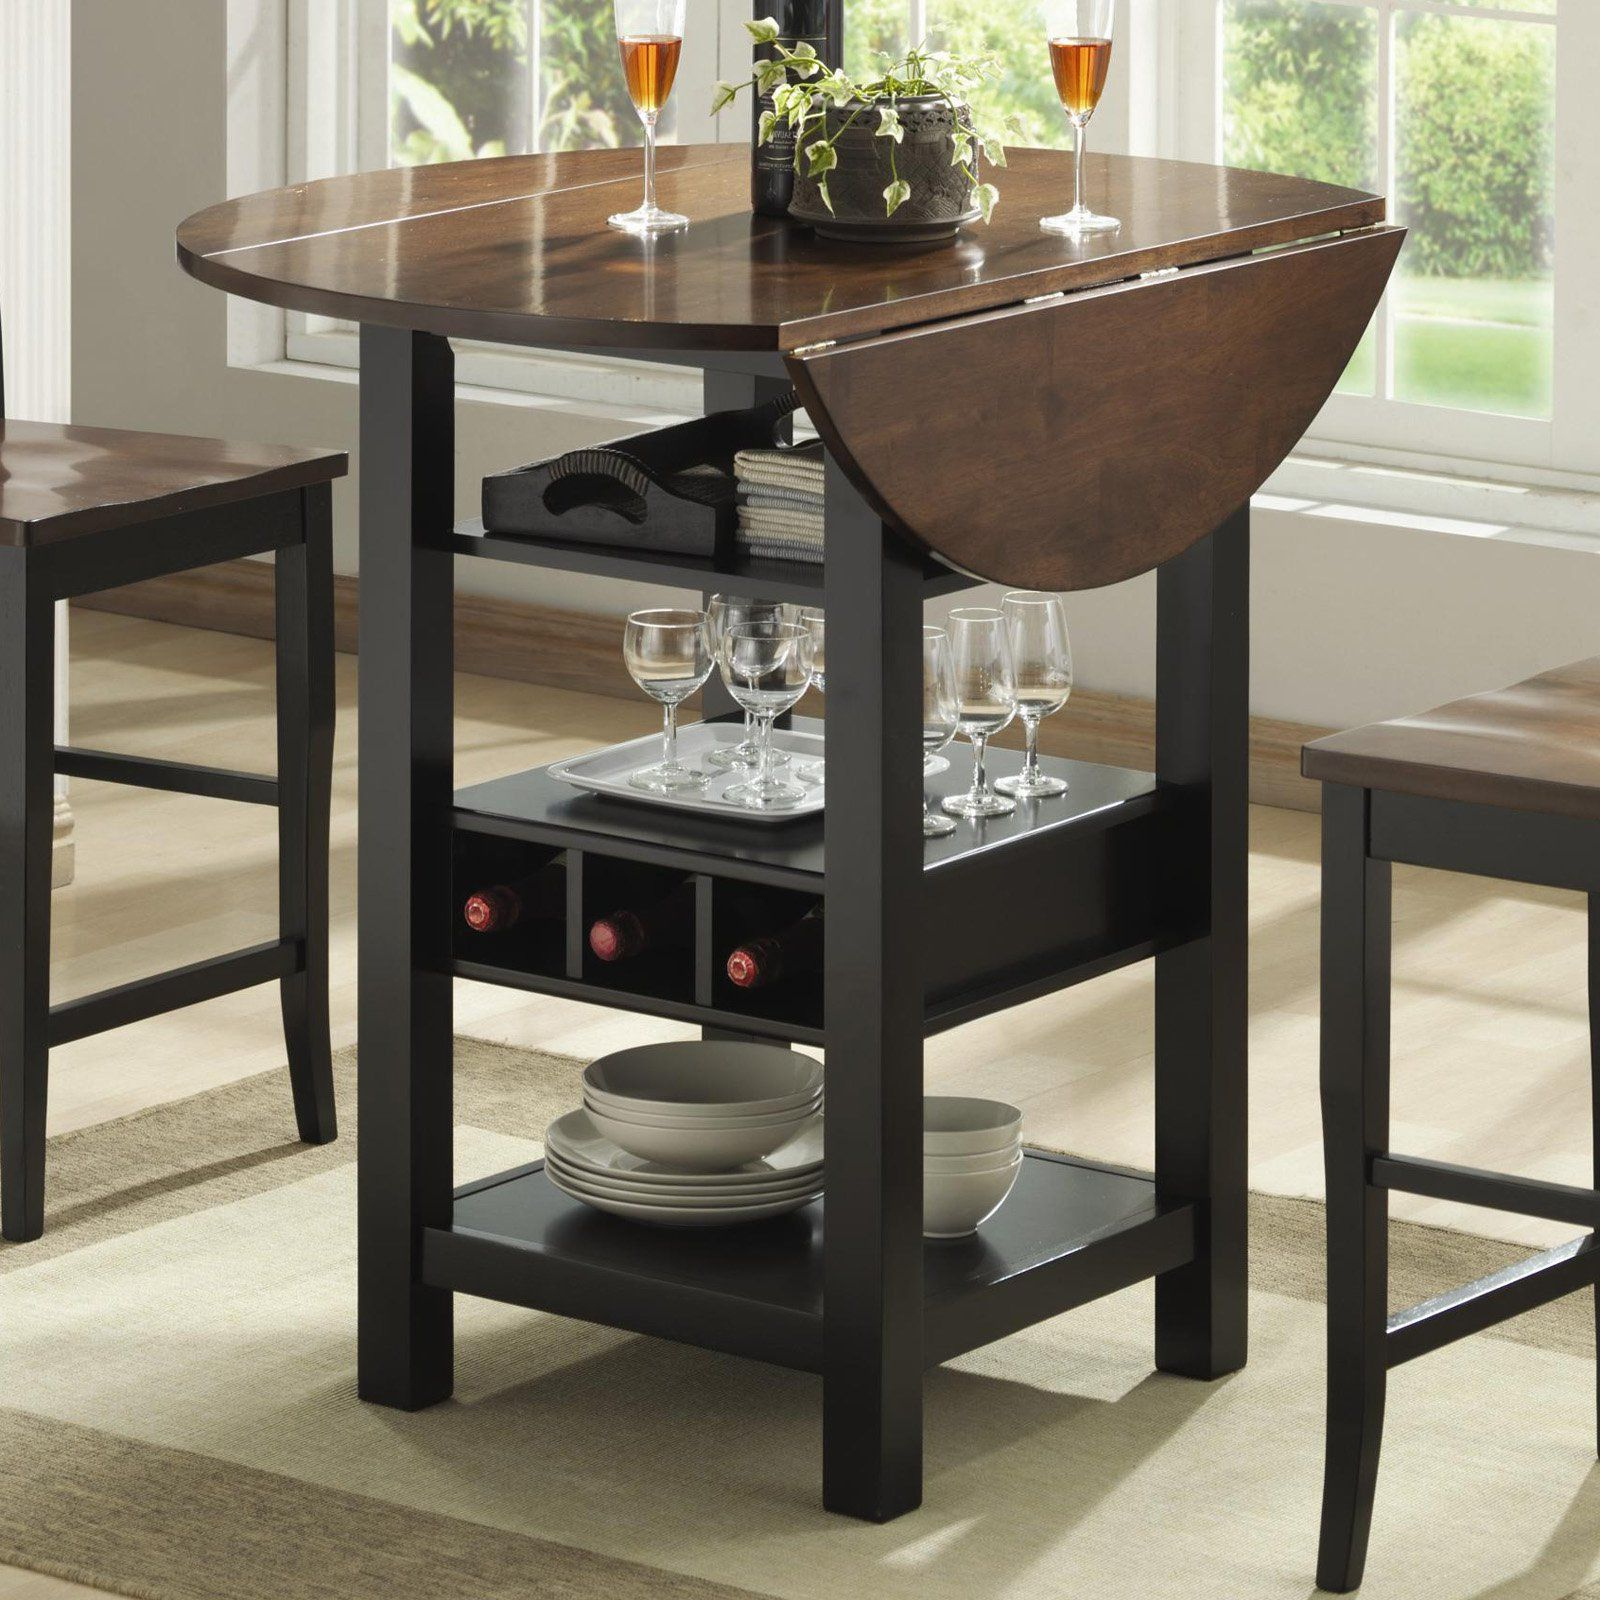 Black Shayne Drop-Leaf Kitchen Tables in Recent Ridgewood Counter Height Drop Leaf Dining Table With Storage